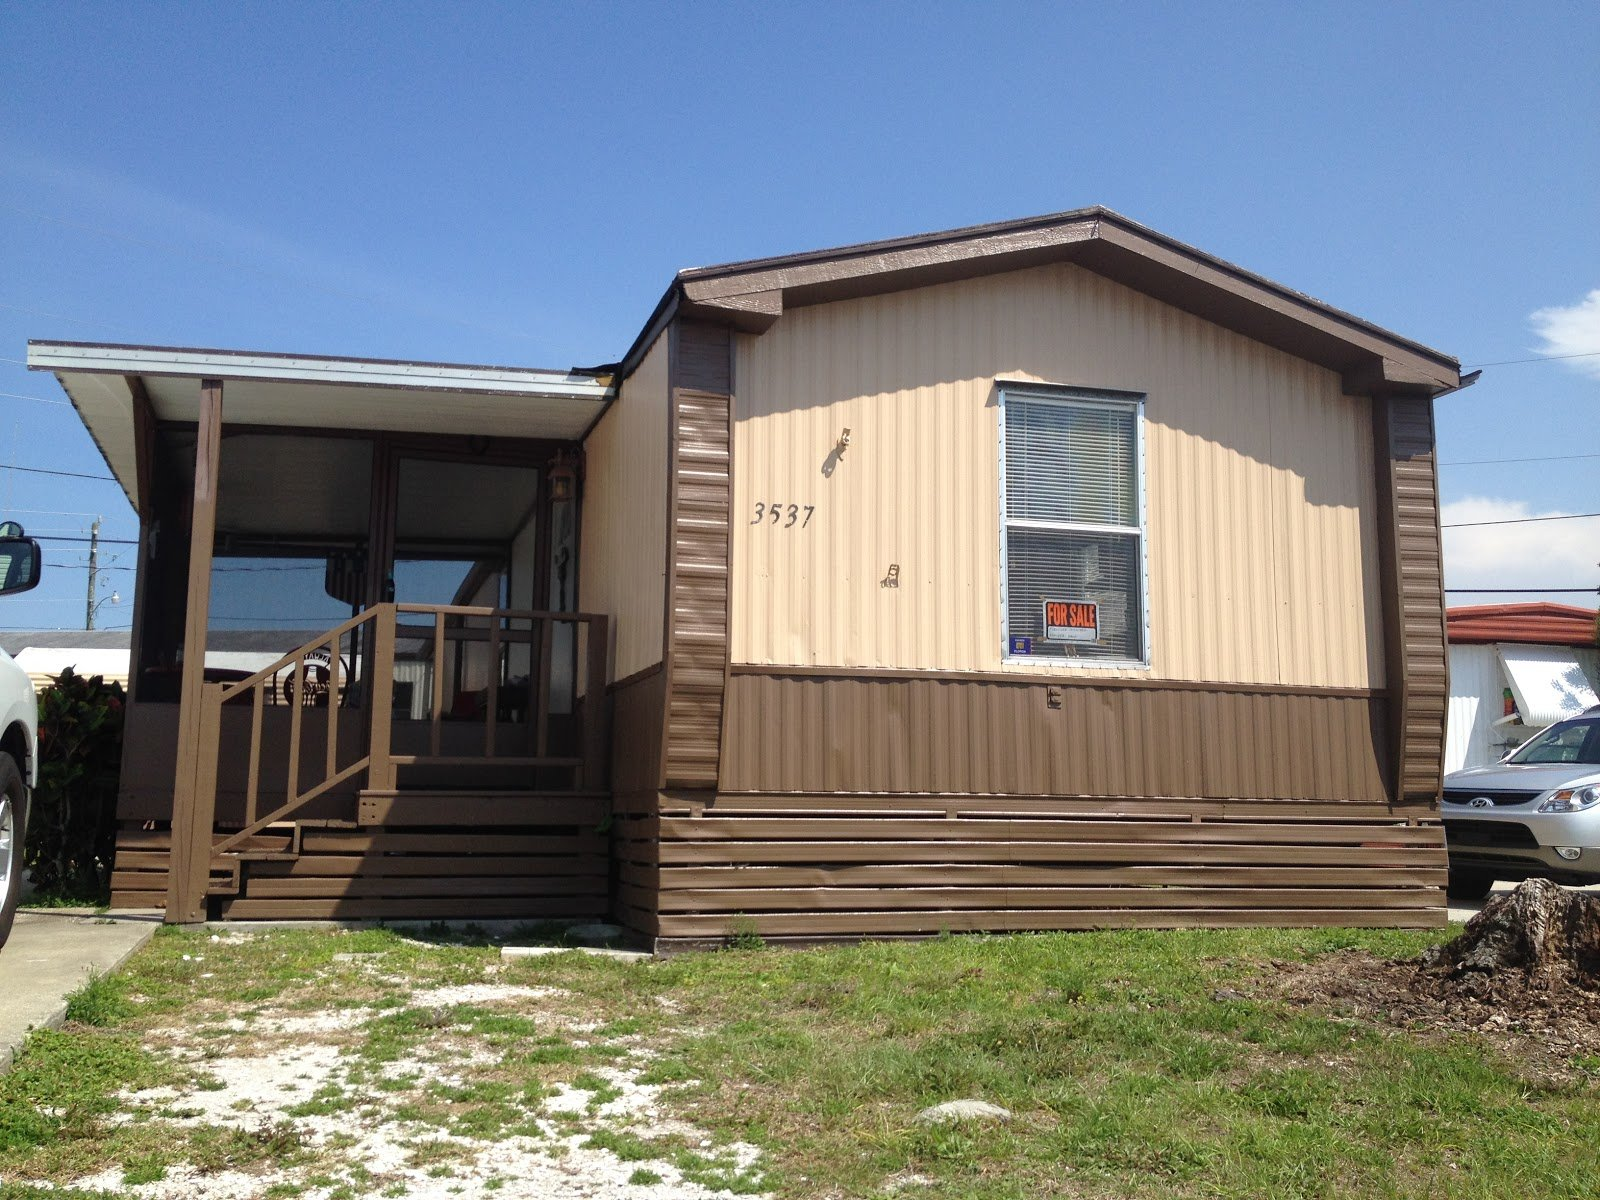 Best Tropical Trail Villa Sold 2 Bedroom 1 Bath Mobile Home For Sale 8 000 With Pictures